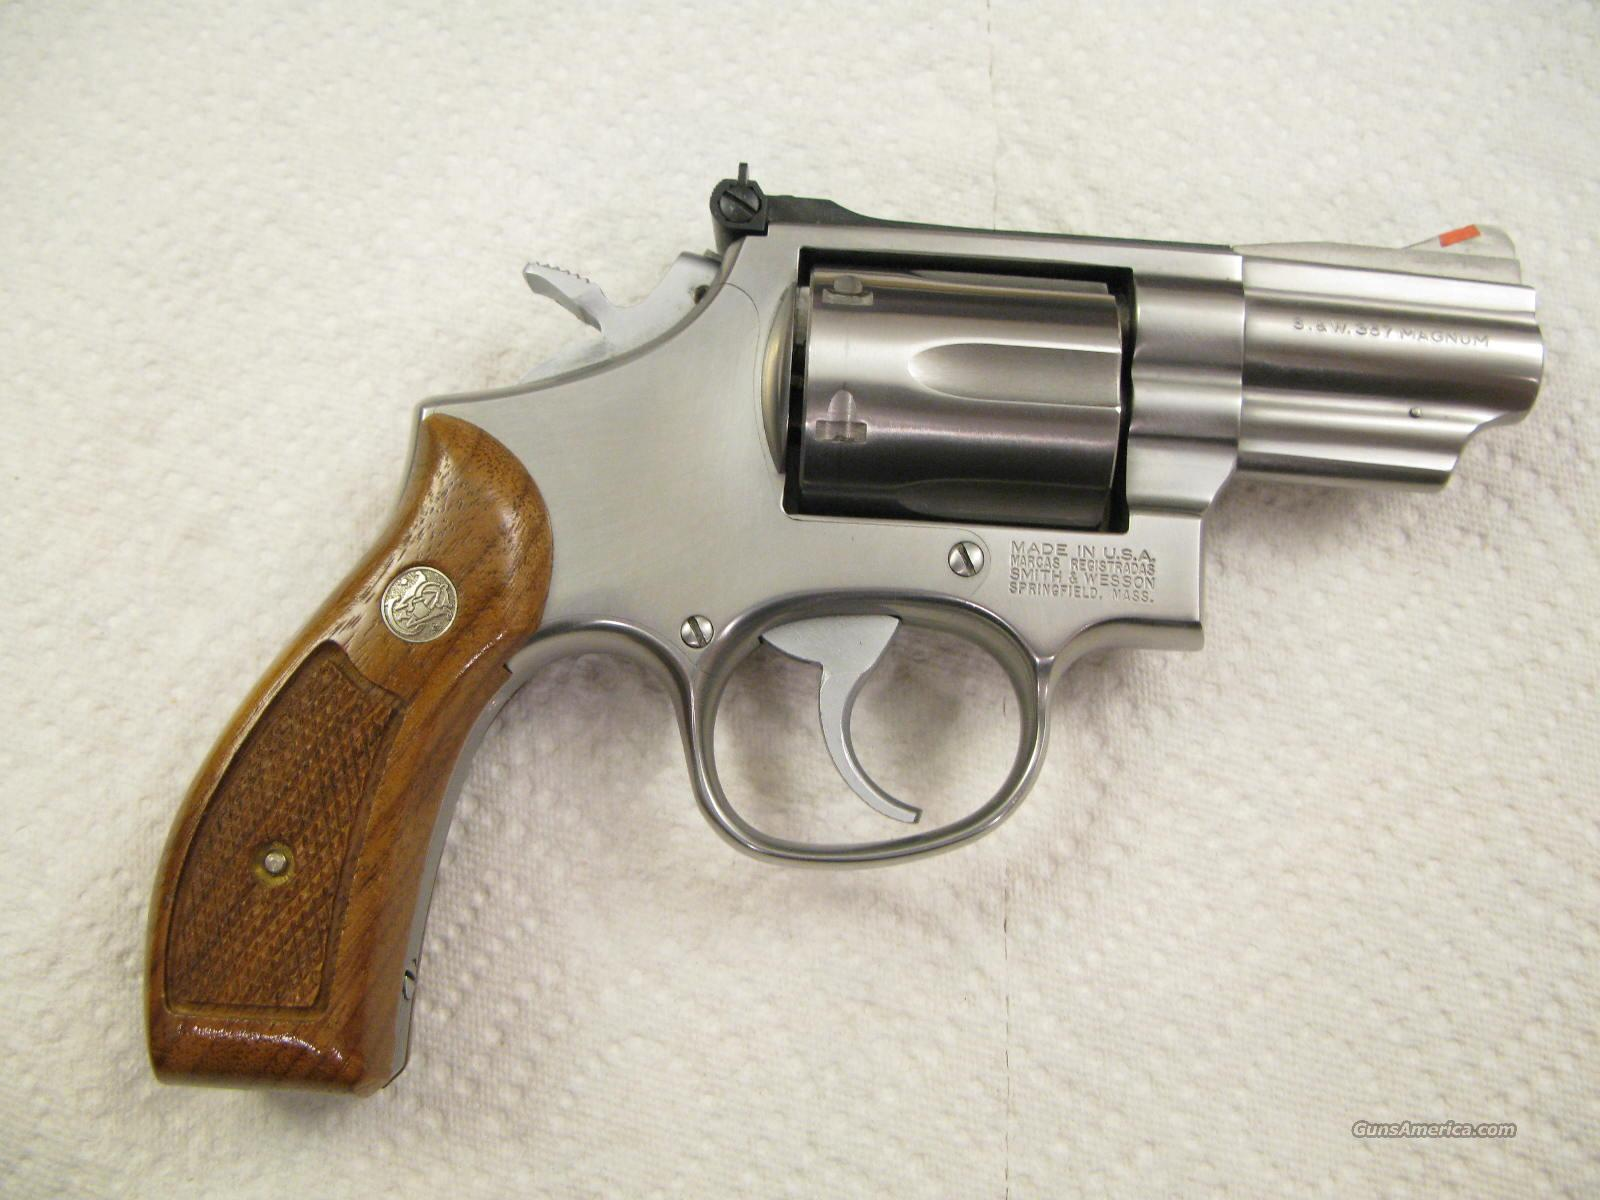 "M-66 2 1/2"" .357 Magnum Stainless Snubbie Minty Older Model Red Ramp White Outline   Guns > Pistols > Smith & Wesson Revolvers > Full Frame Revolver"